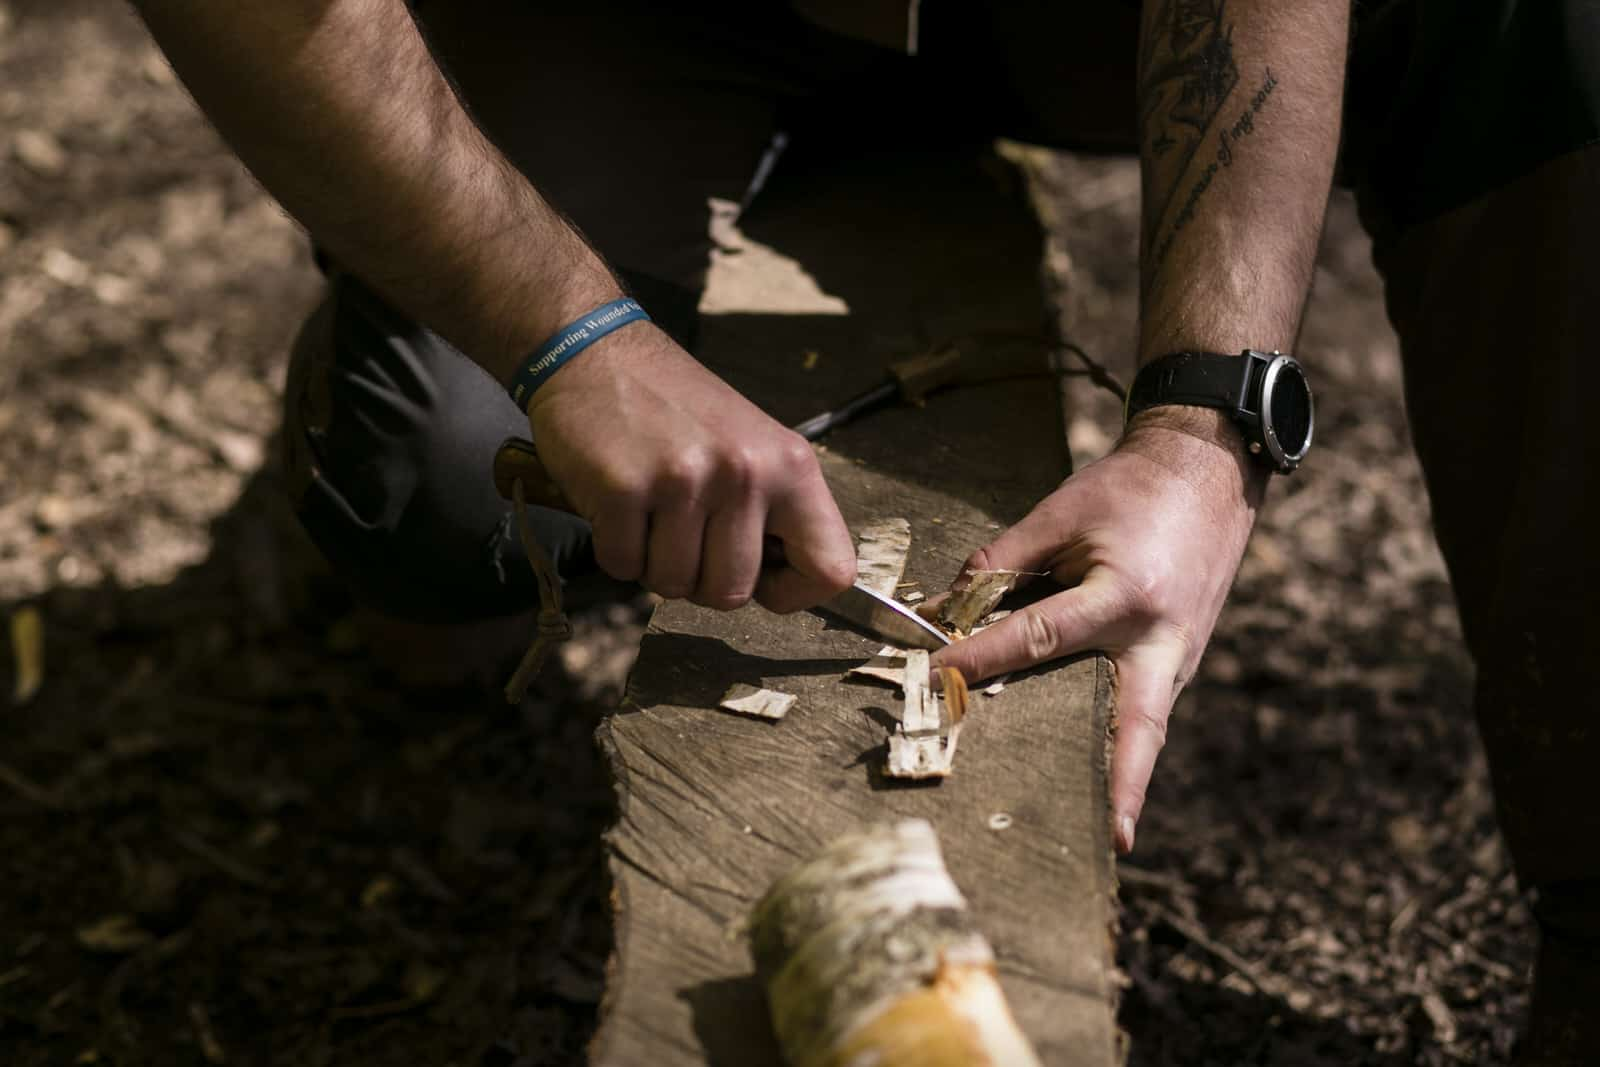 Sharpen your bushcraft knife